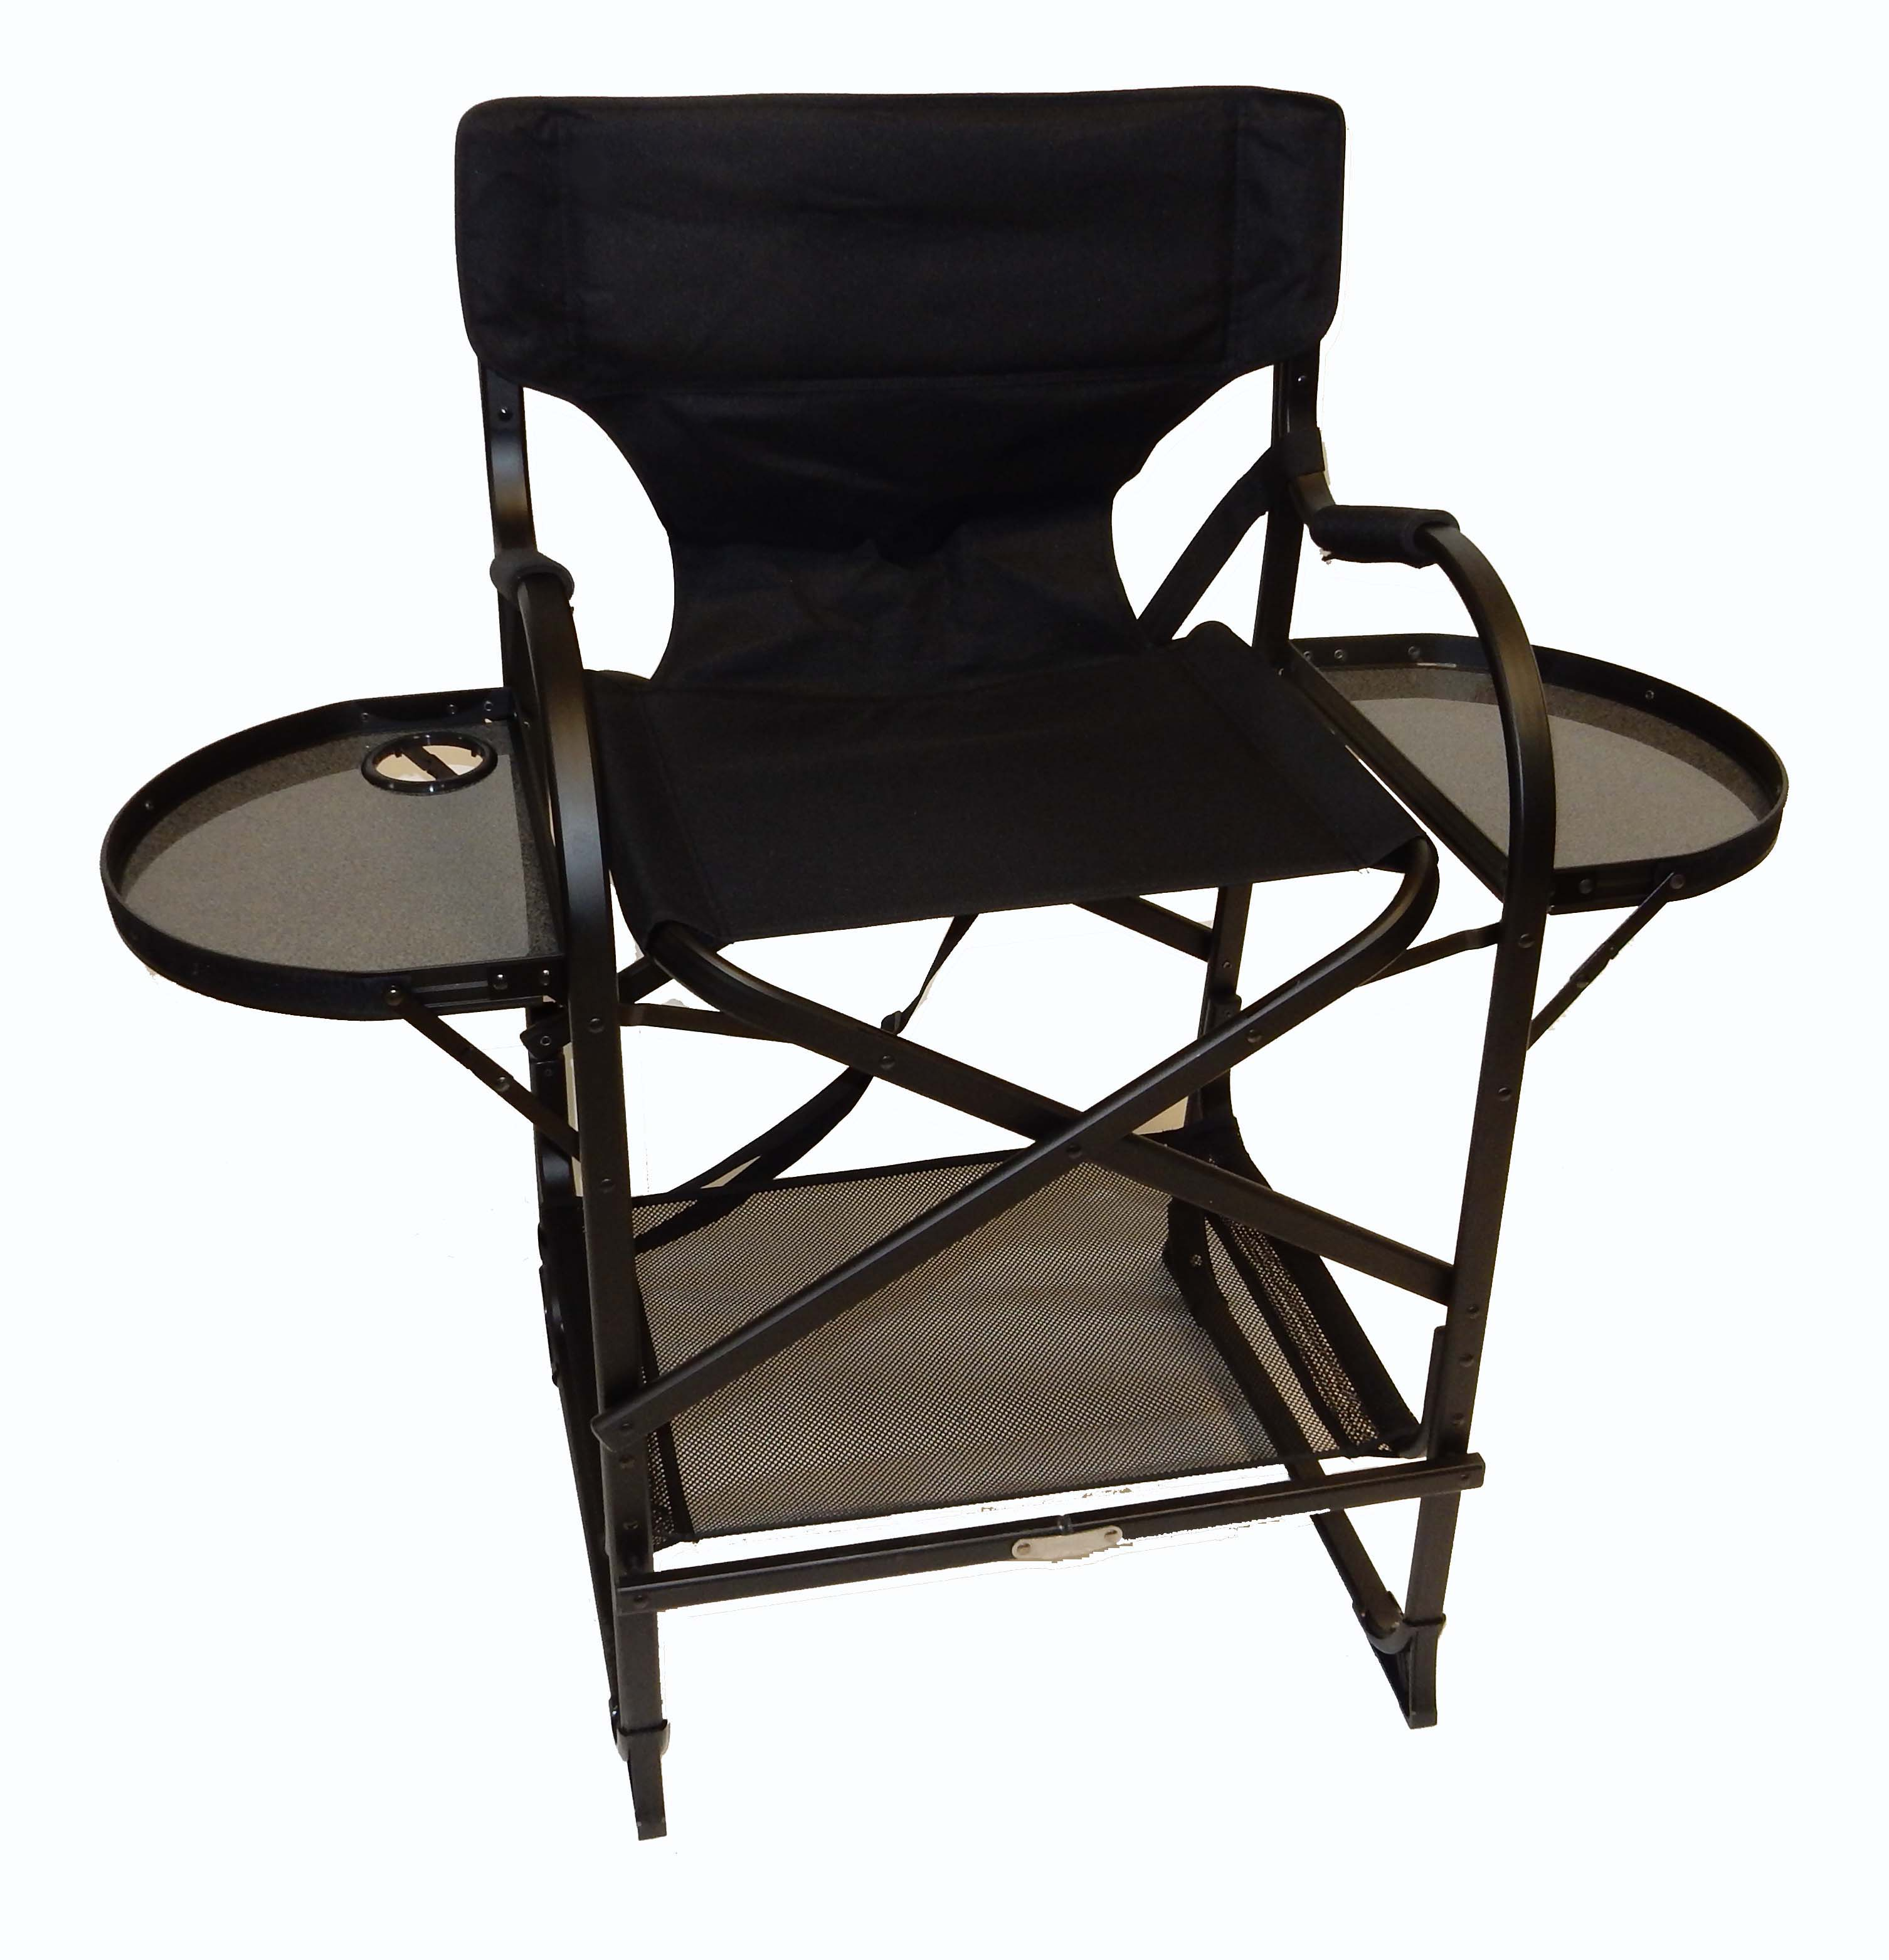 makeup chairs office chair under 100 tuscany pro mid size